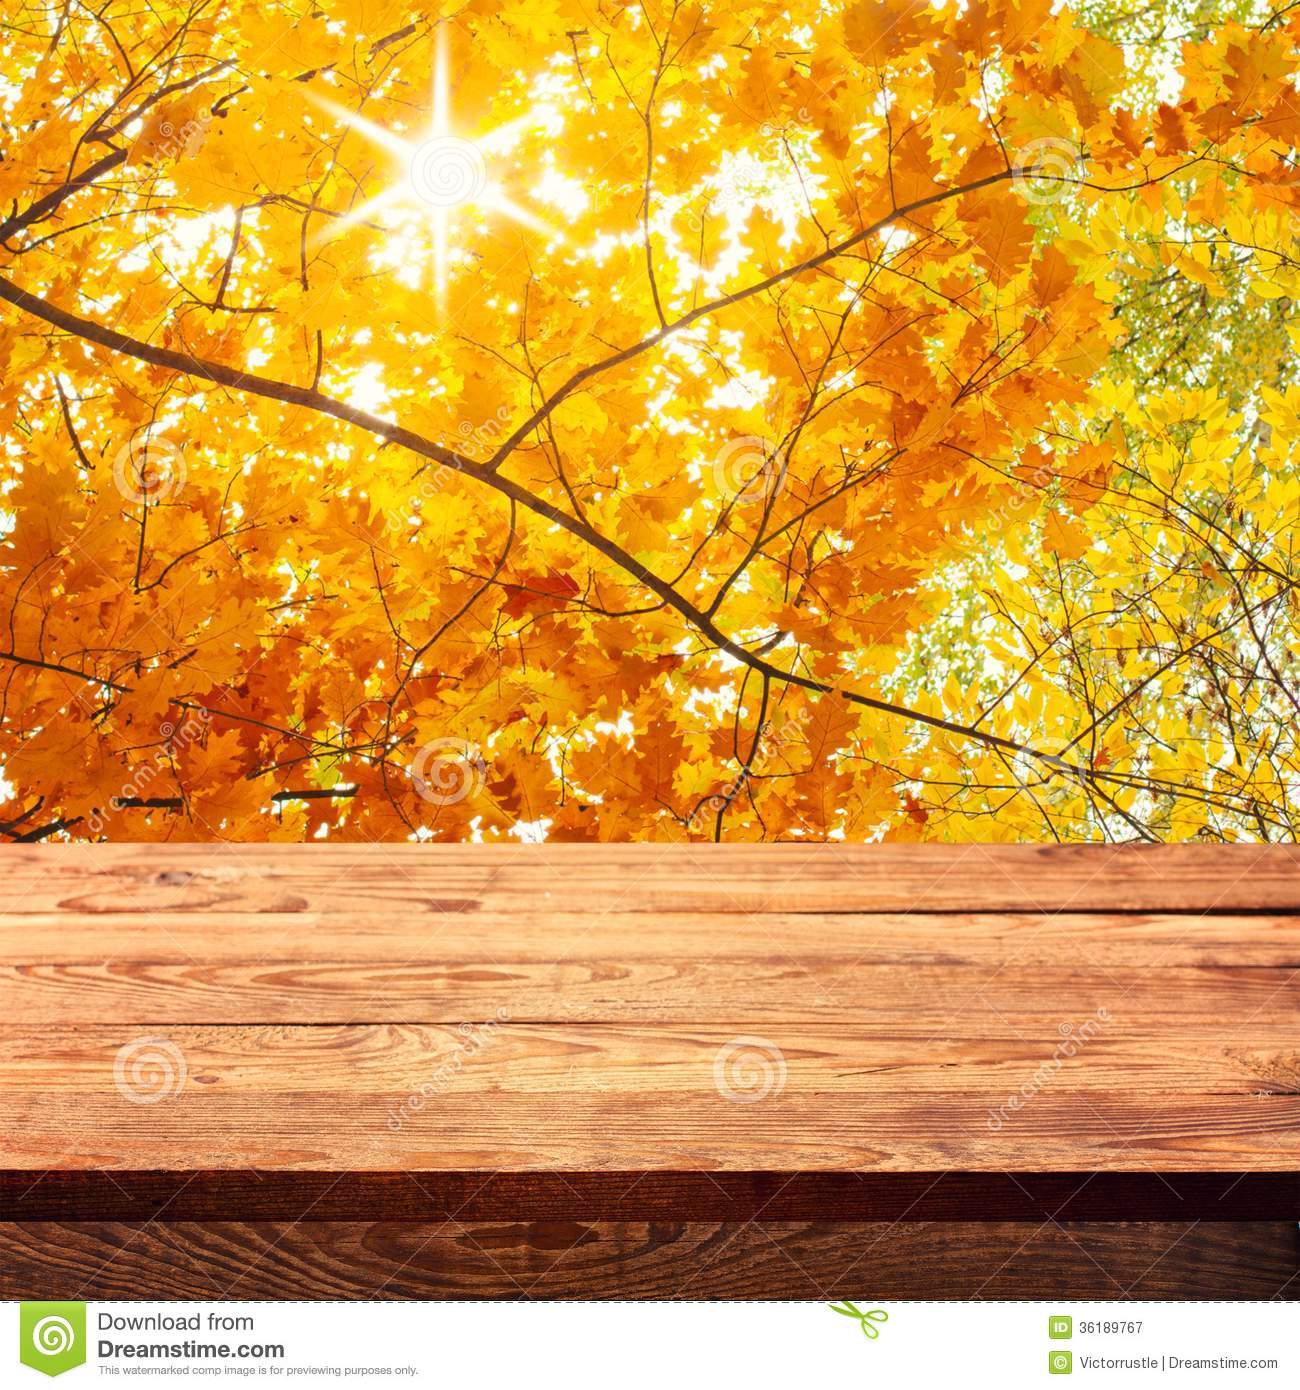 Fall Wooden Wallpaper Empty Wooden Deck Table With Tablecloth Stock Image